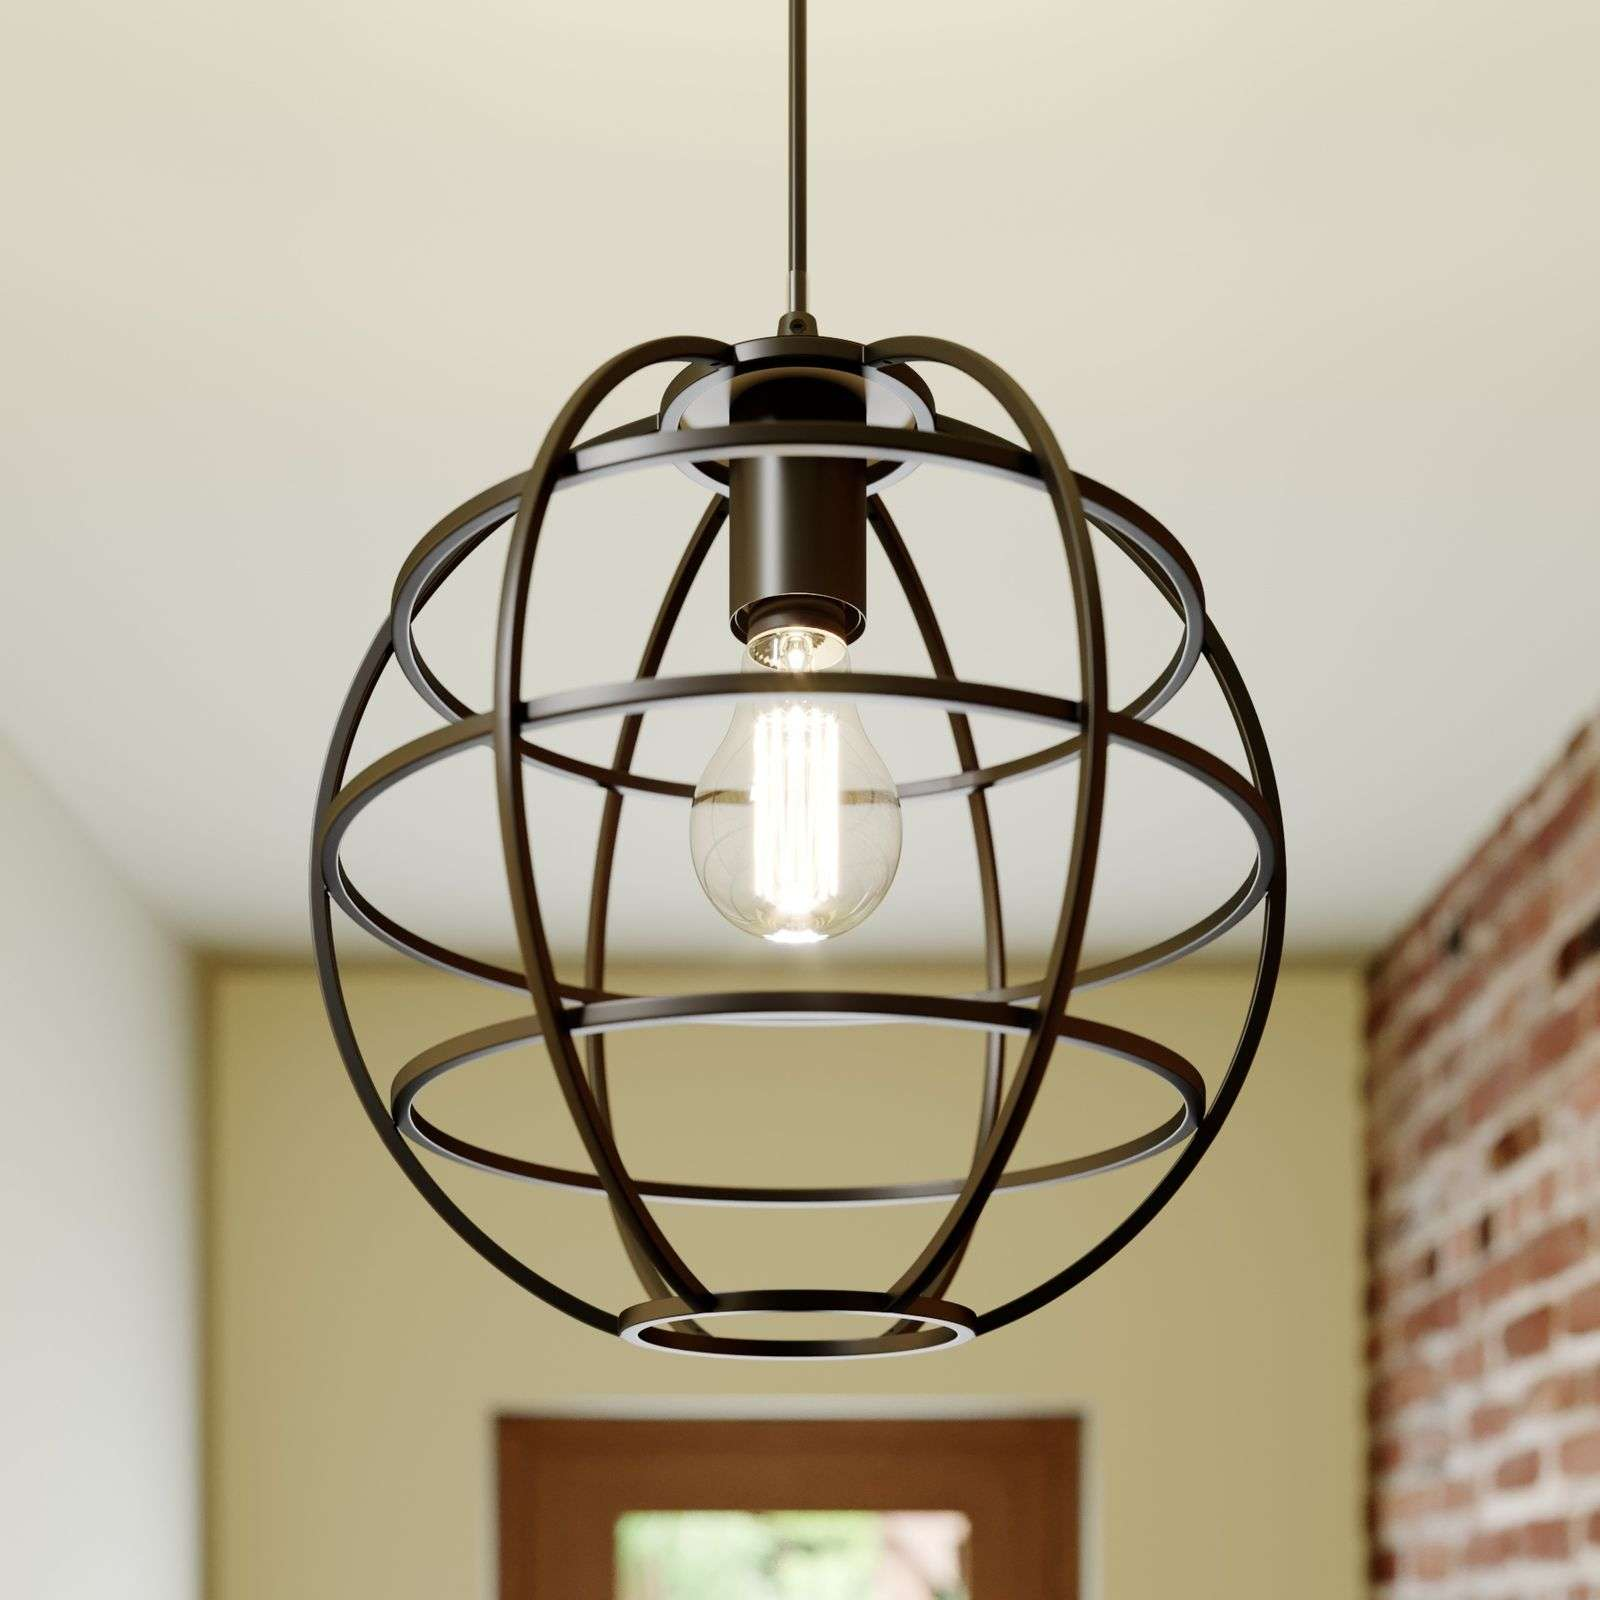 Suspension cage Bekira, 1 lampe